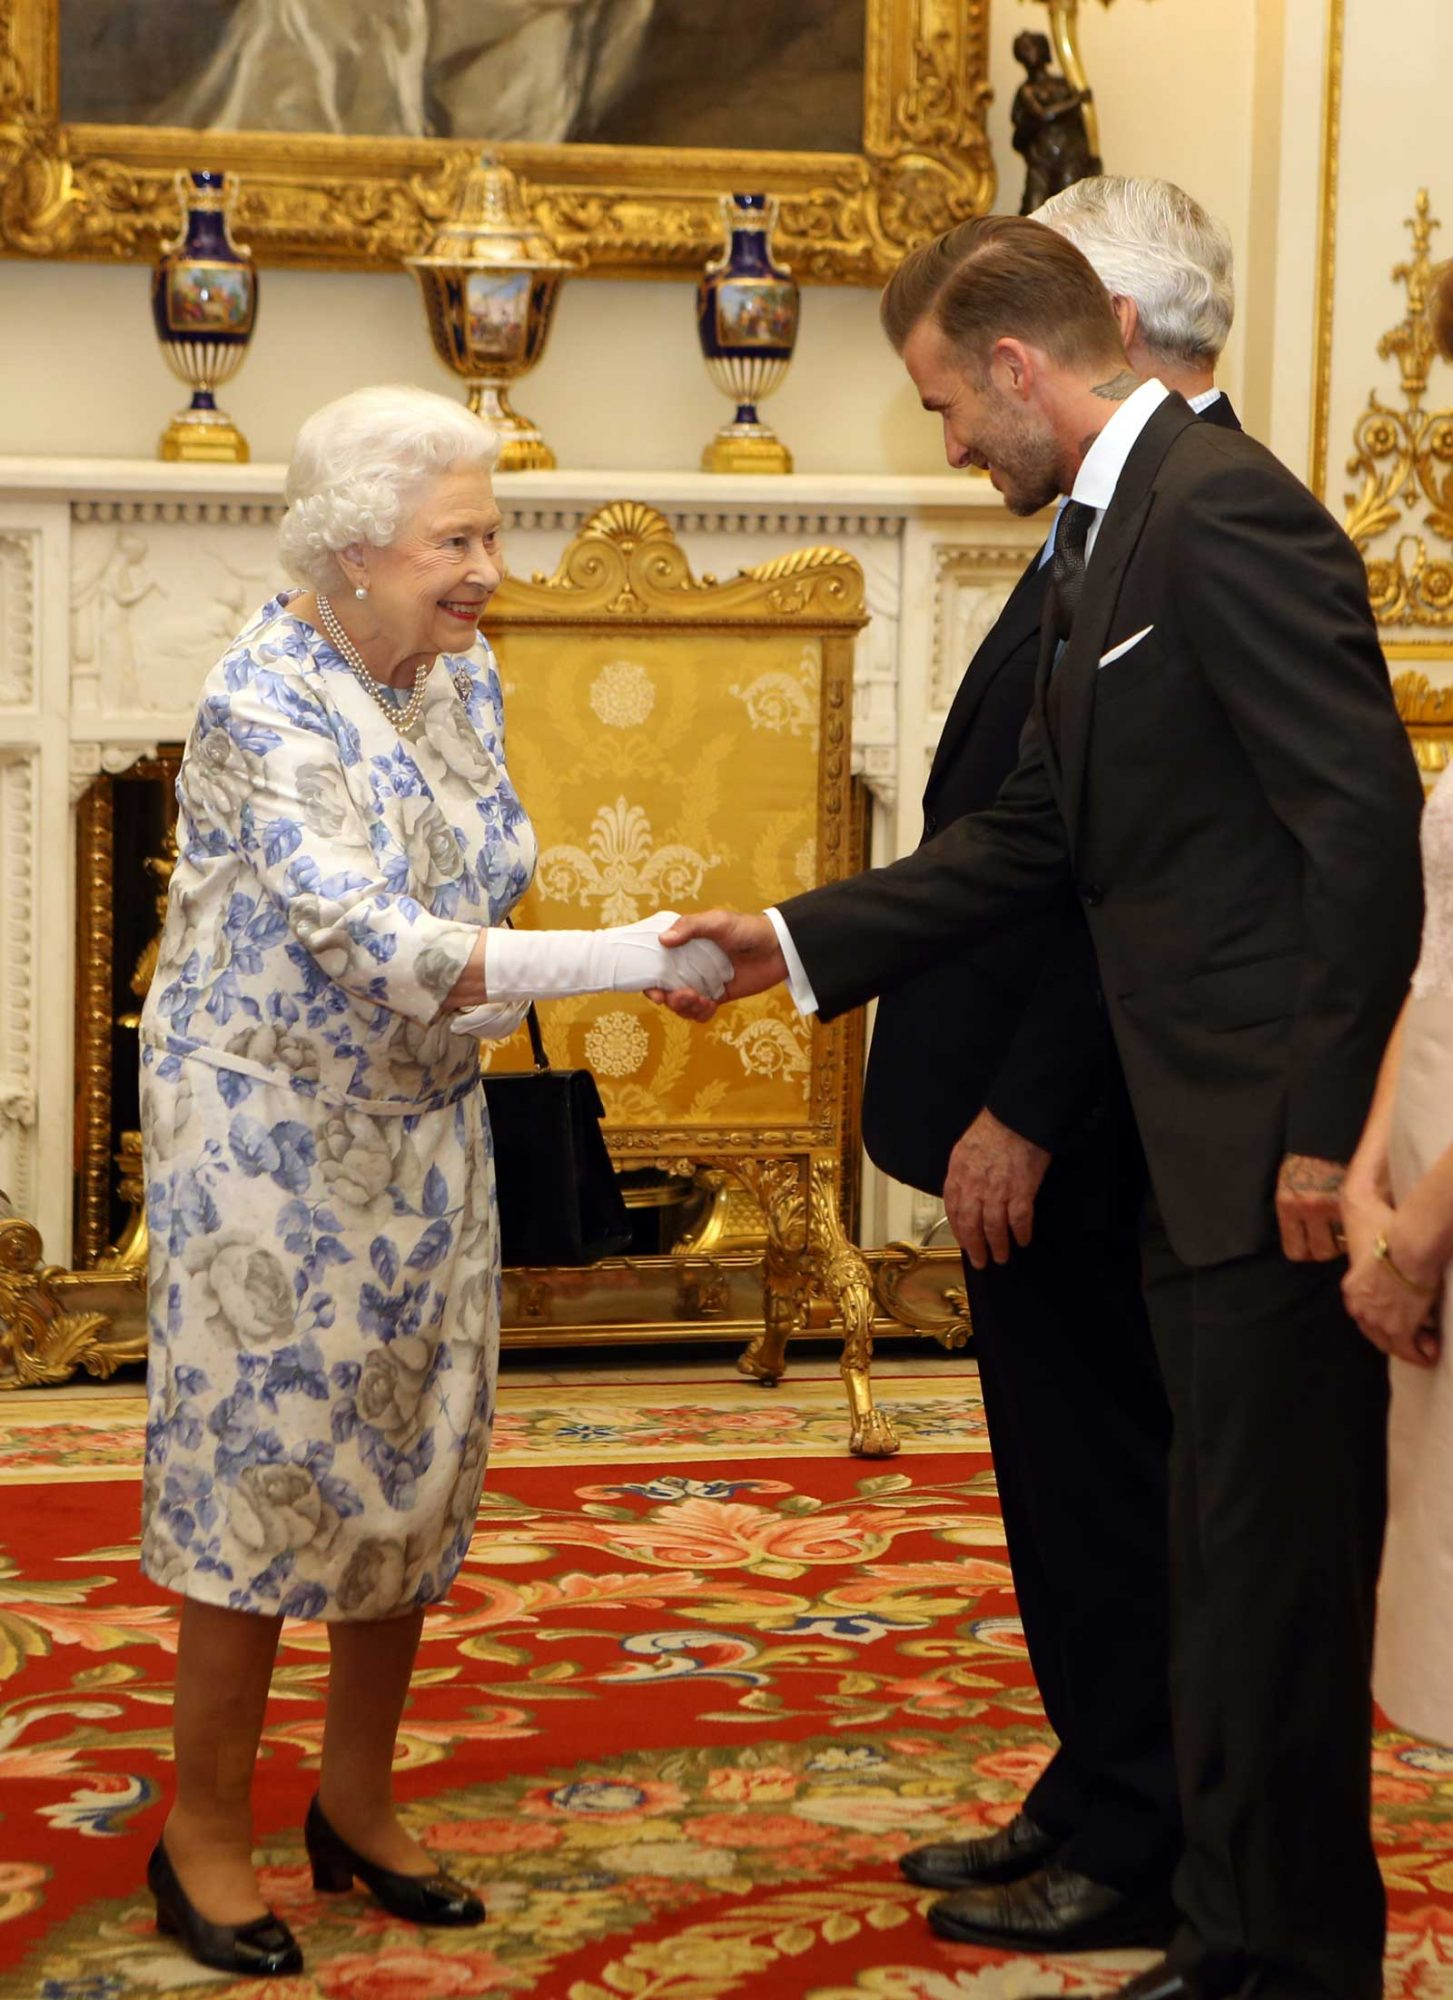 Britain's Queen Elizabeth II greets England's former football player David Beckham (R) as he attends the Queen's Young Leaders Awards at Buckingham Palace in London on June 23, 2016.